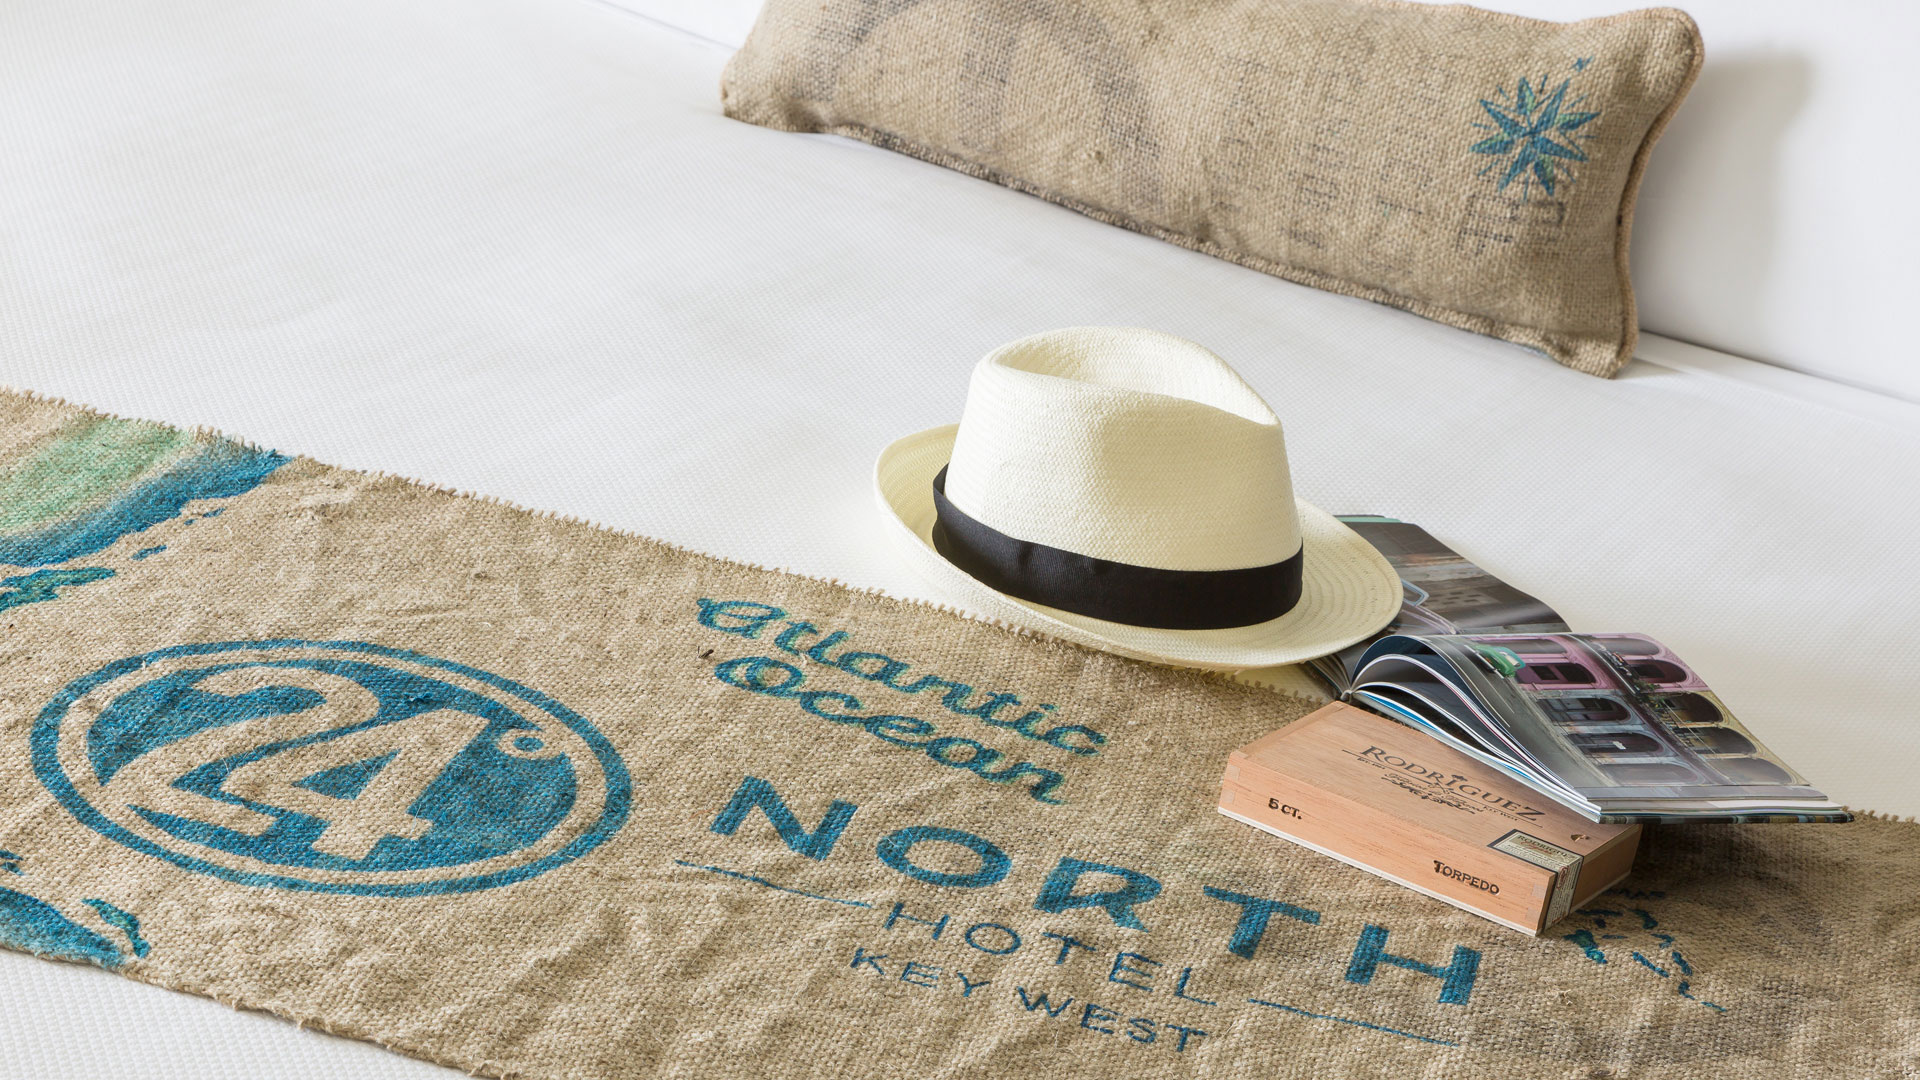 24 Reasons to stay at 24 North Hotel